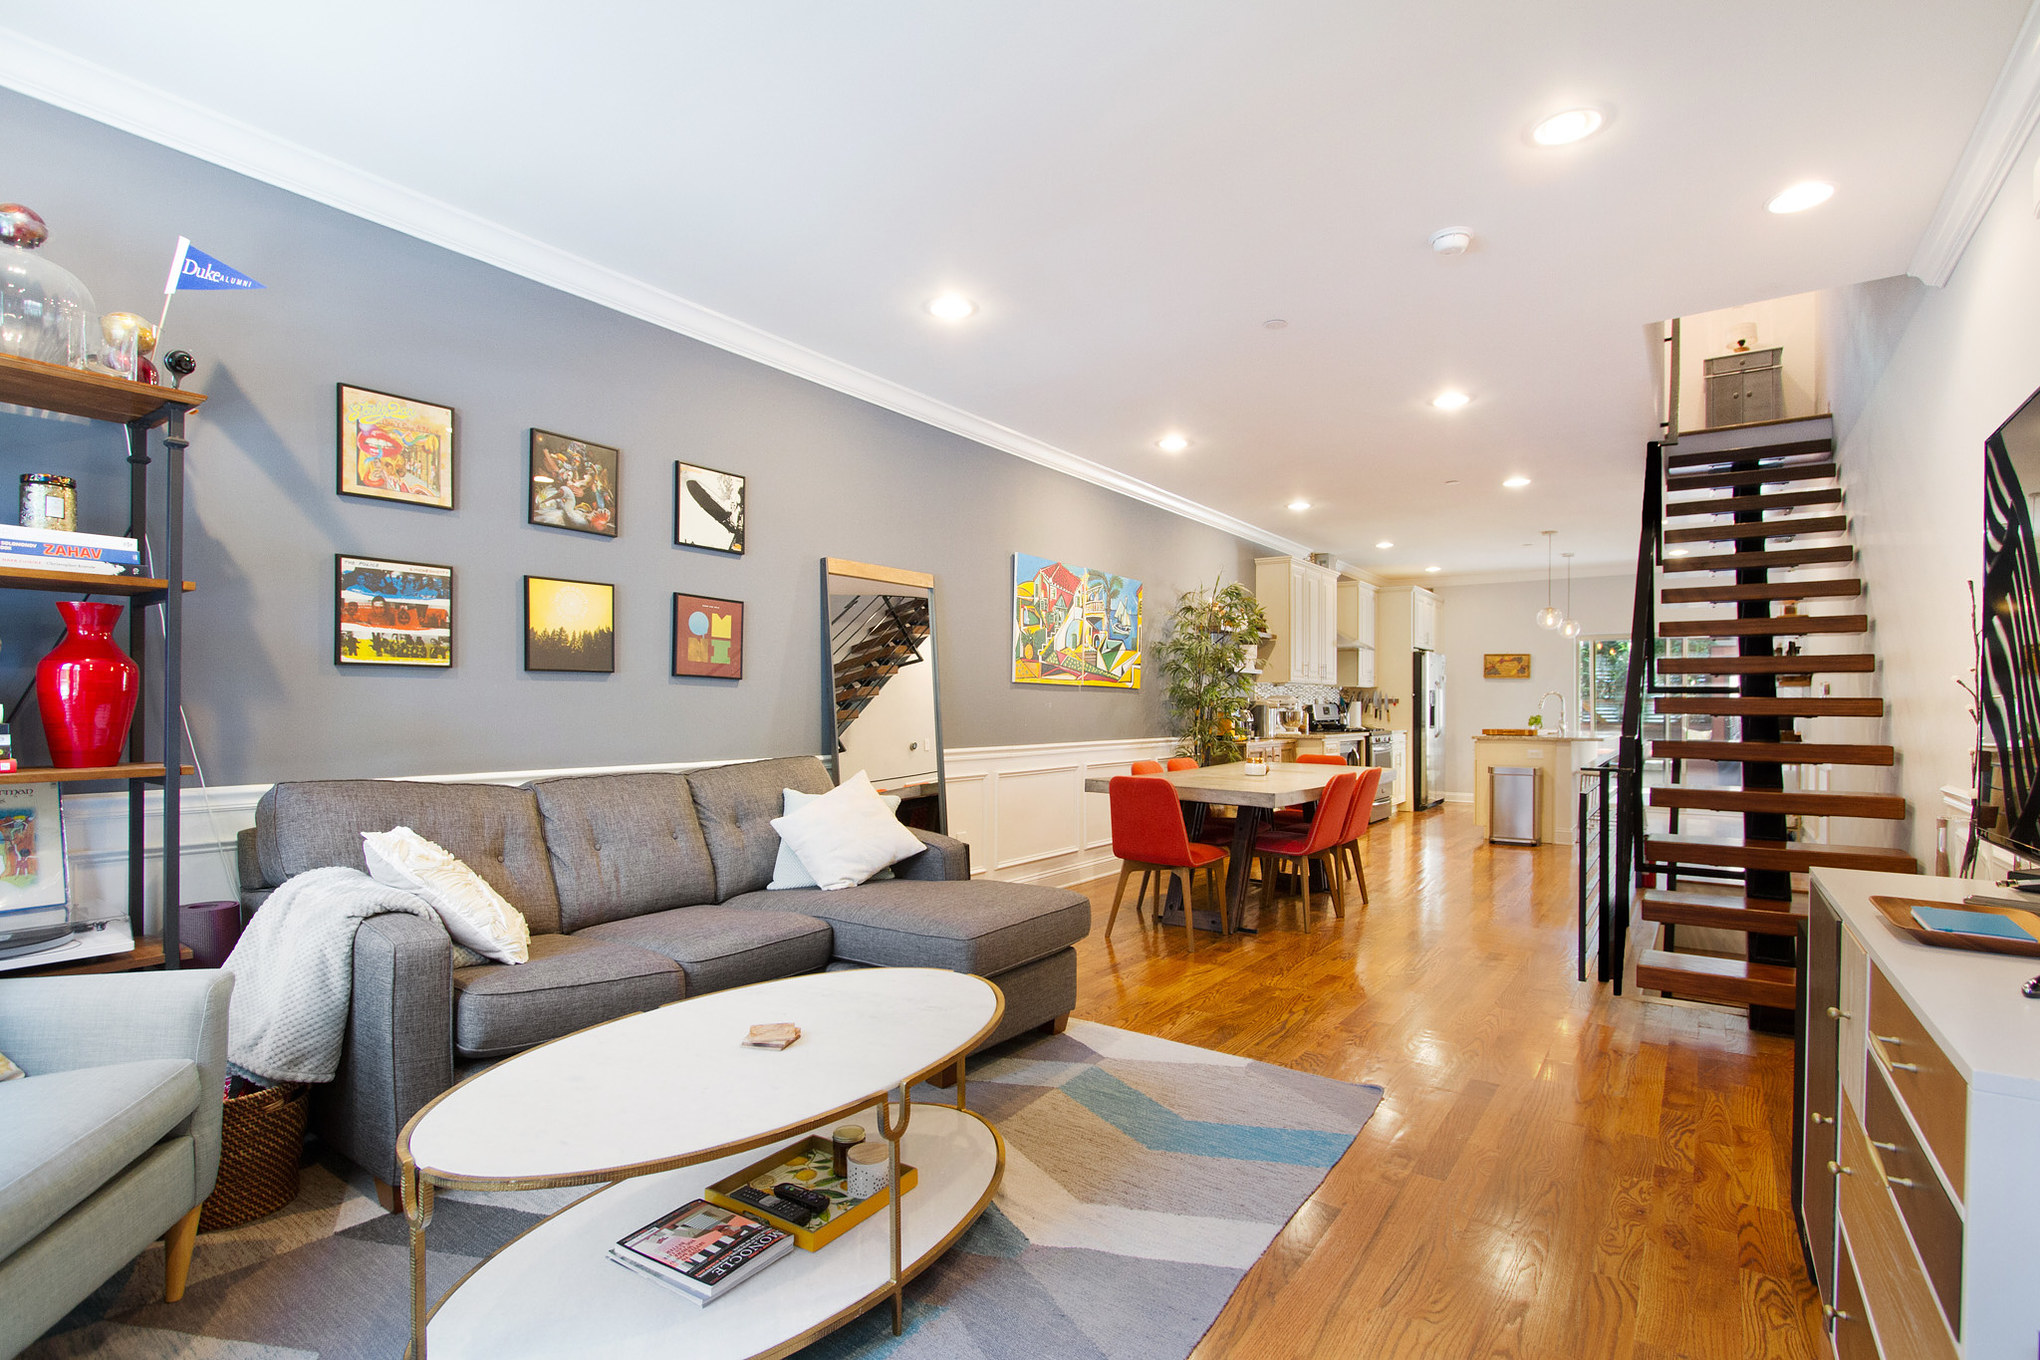 bella vista home with impressive backyard asks 699k curbed philly